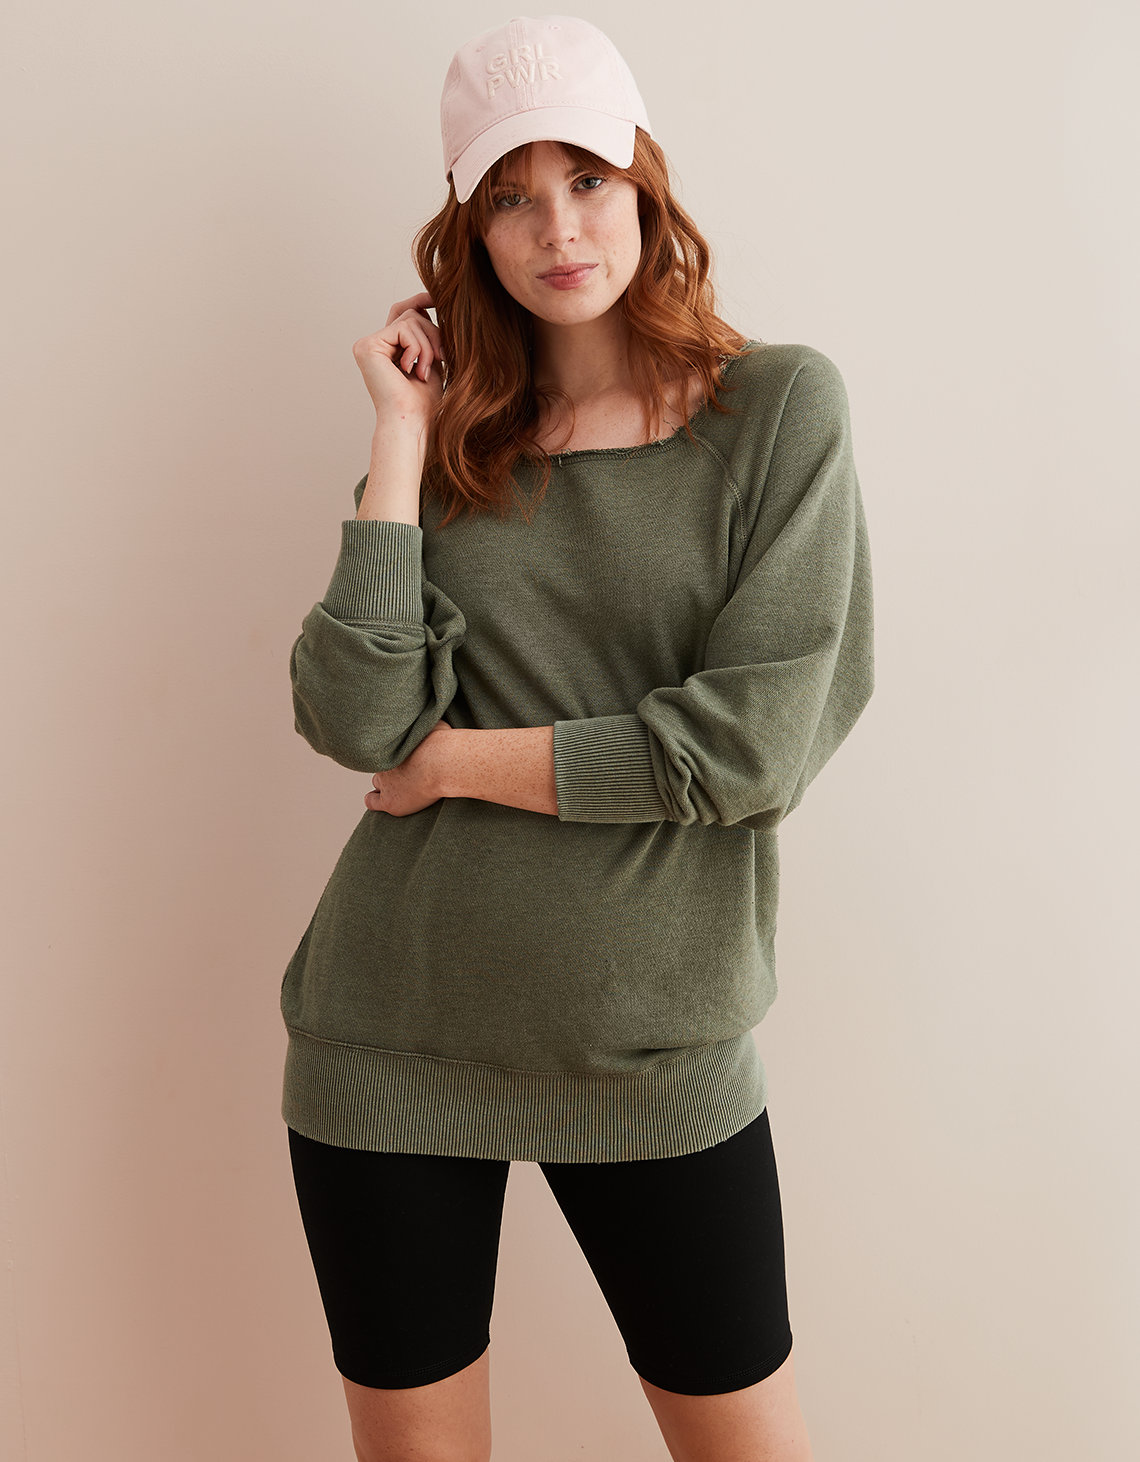 c5c6a54a8708ed Aerie Raw Cut City Sweatshirt, Olive Fun | American Eagle Outfitters